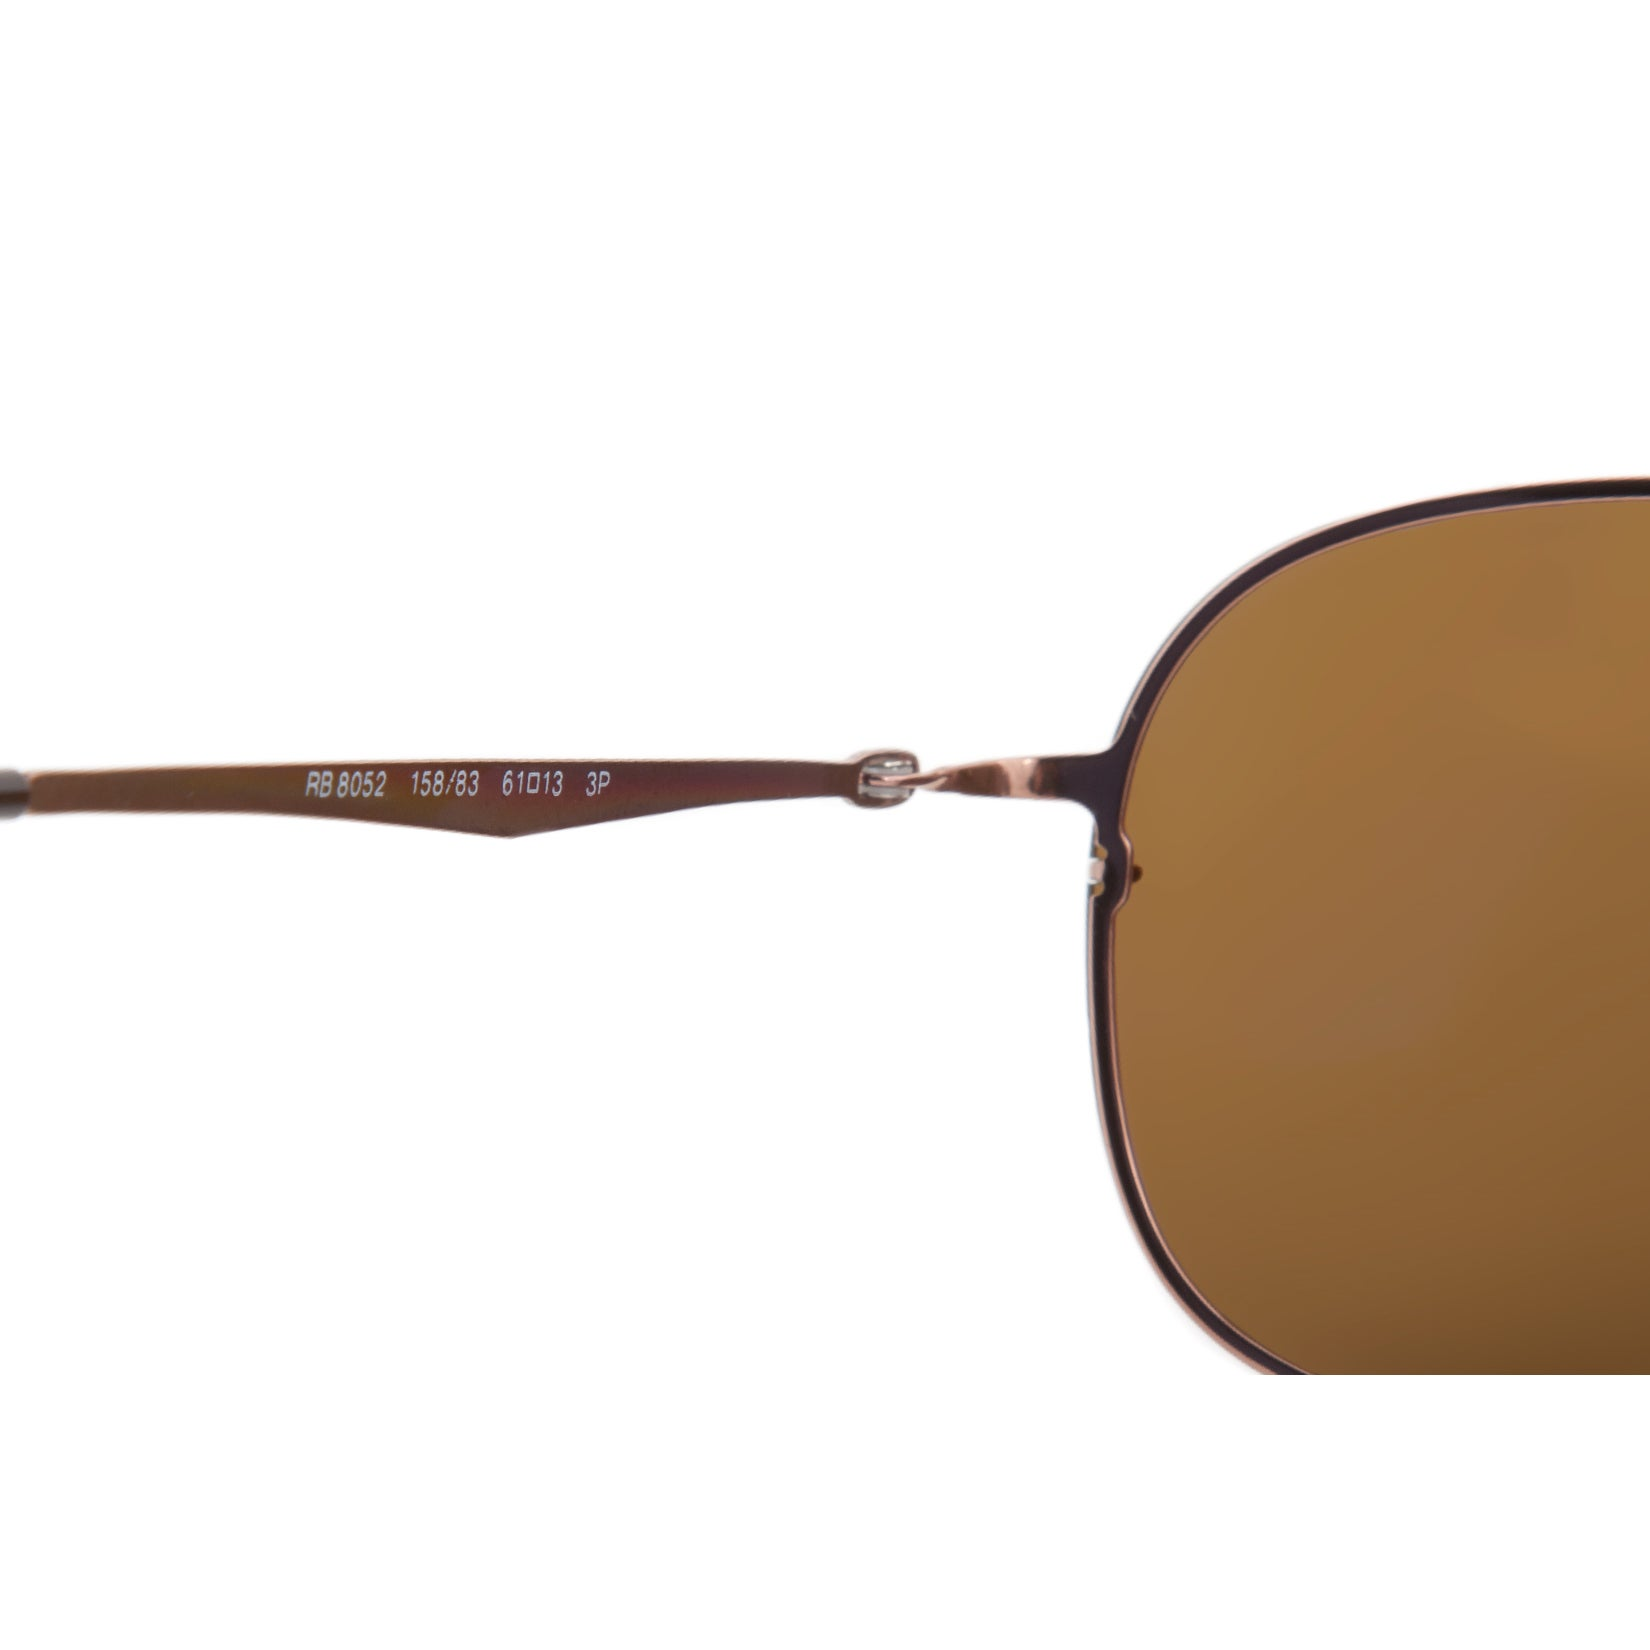 a684d37aadb Ray Ban Rb8052 154 – Southern California Weather Force